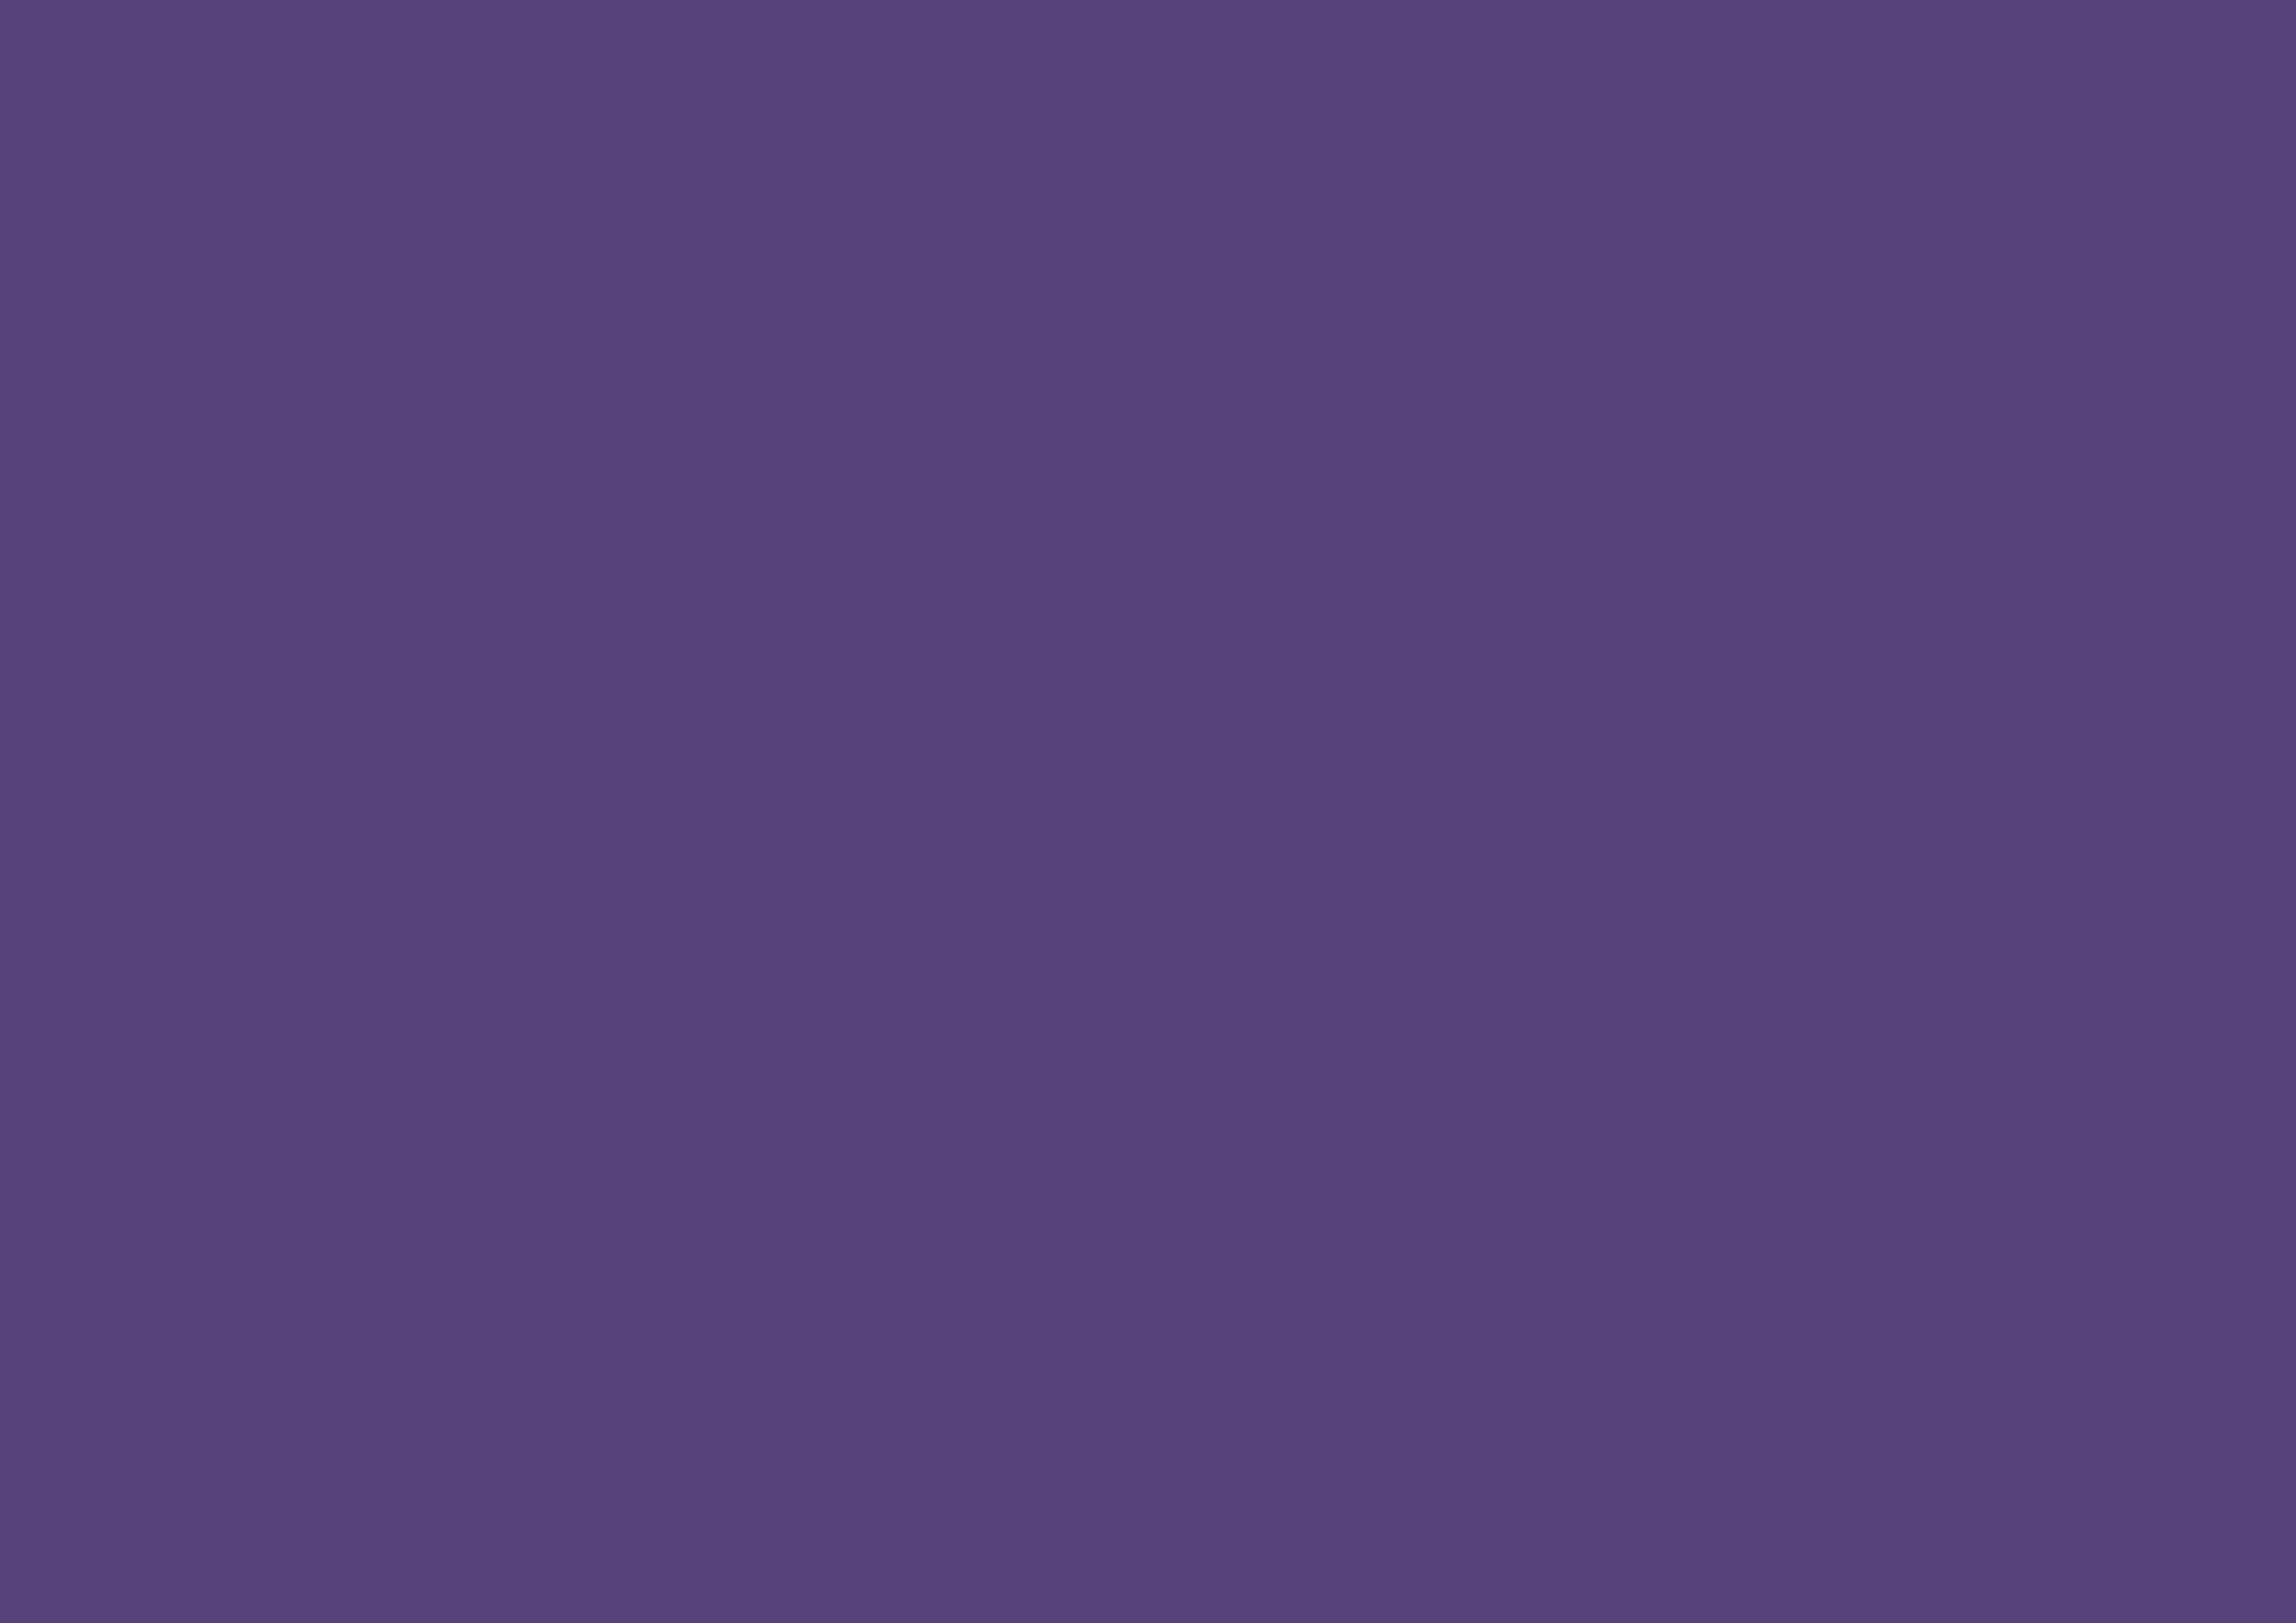 3508x2480 Cyber Grape Solid Color Background